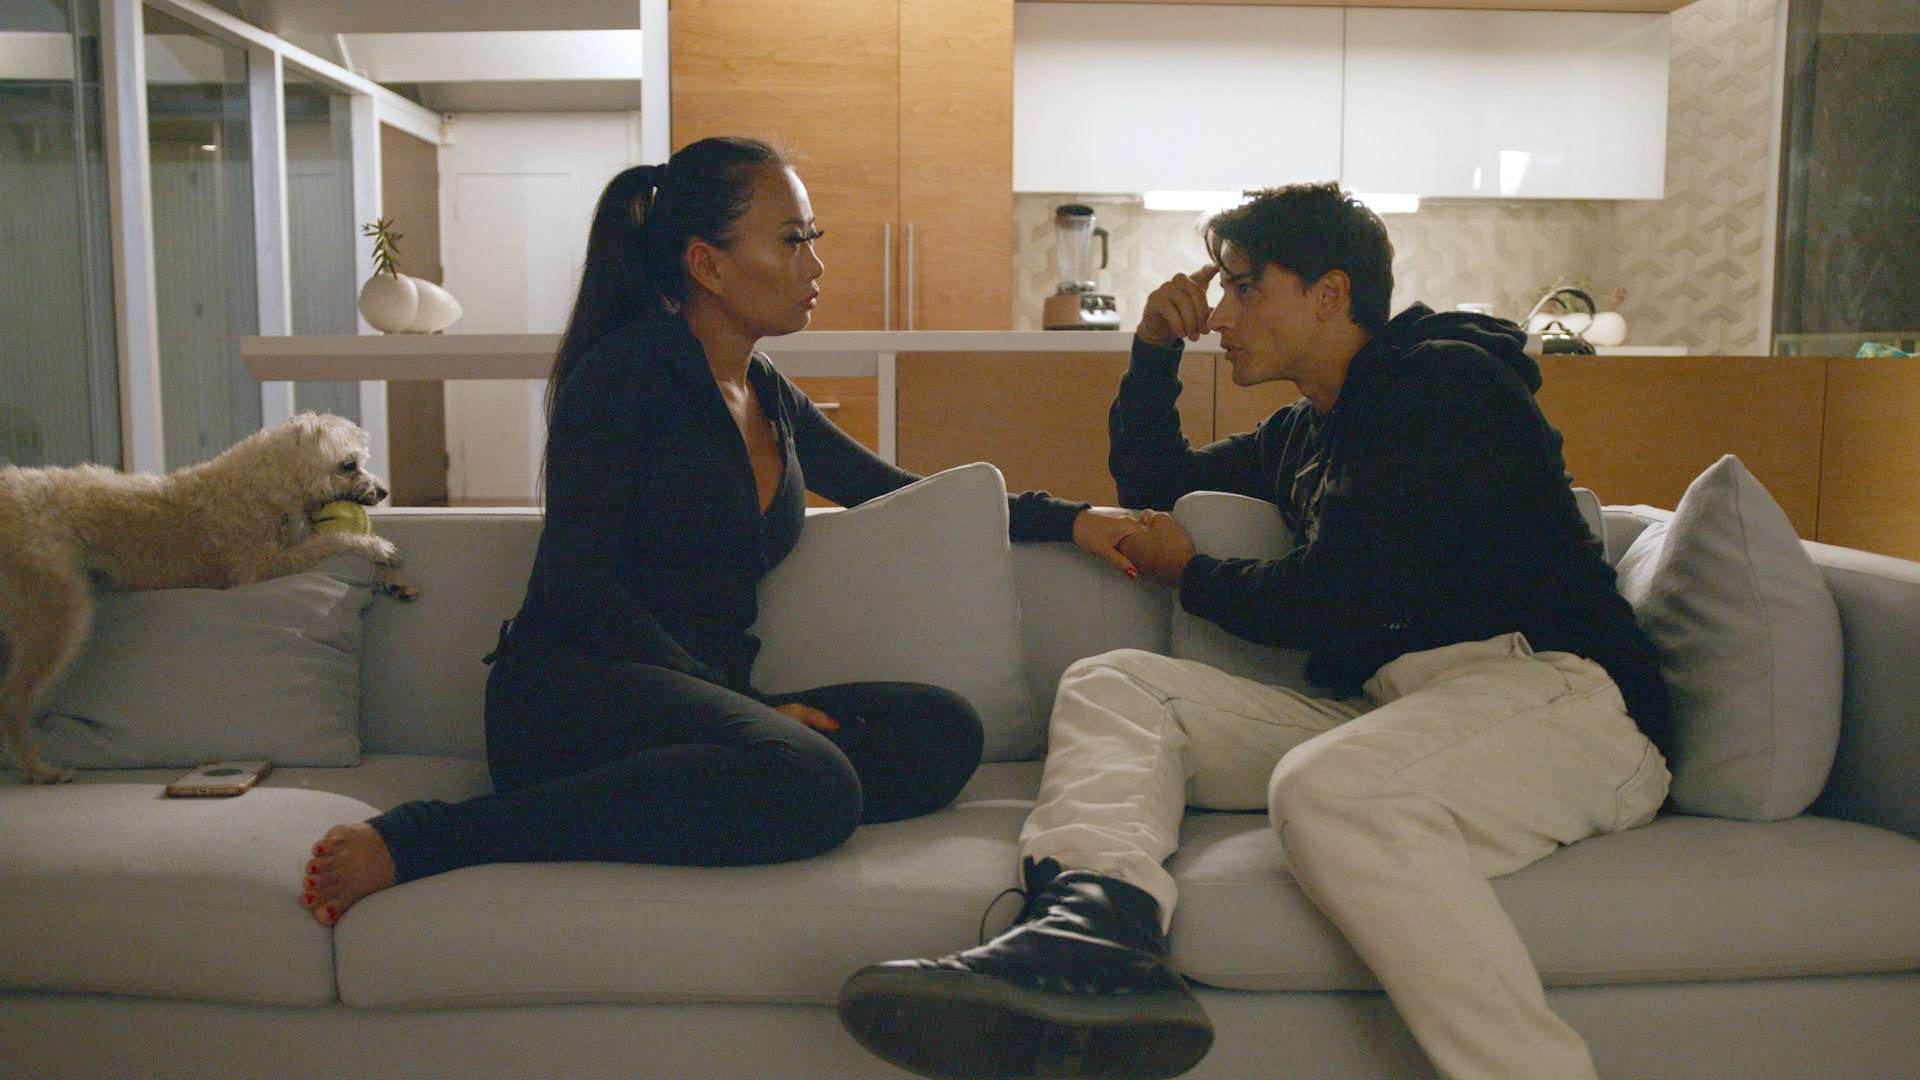 Andrew Gray and Kelly Mi Li in Bling Empire (2021)